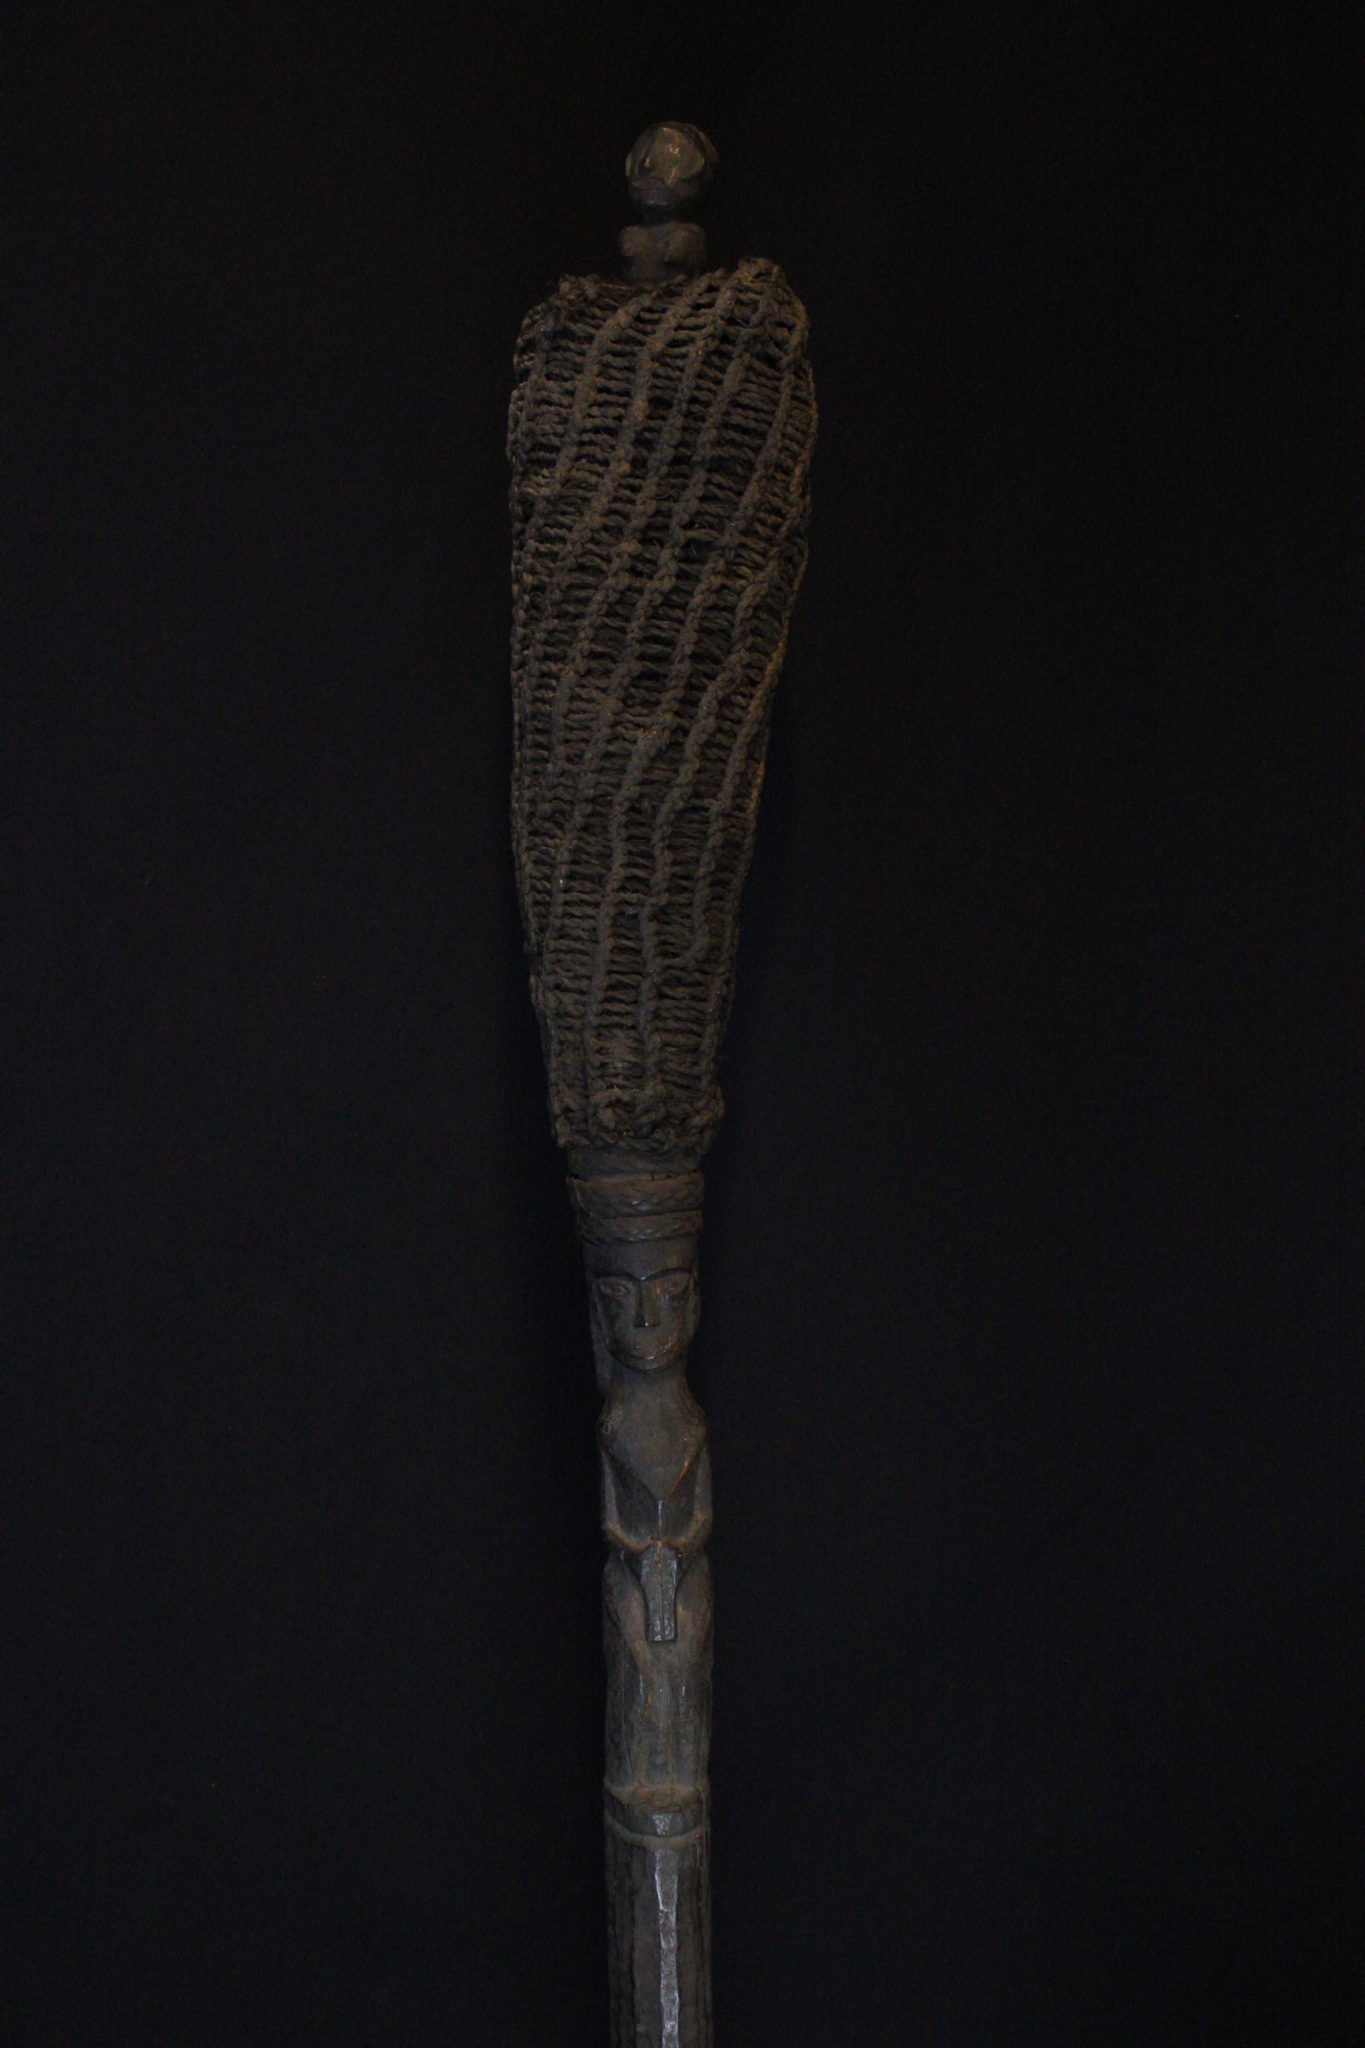 """Shaman's Magic Staff, Sumatra, Indonesia, Batak tribe, Early 20th c, Wood, plant fiber, rattan, pigmented with soot. Used for calling spirits and in healing rituals. 56 ½"""" x 5"""" x 4 ¾"""", $1600."""